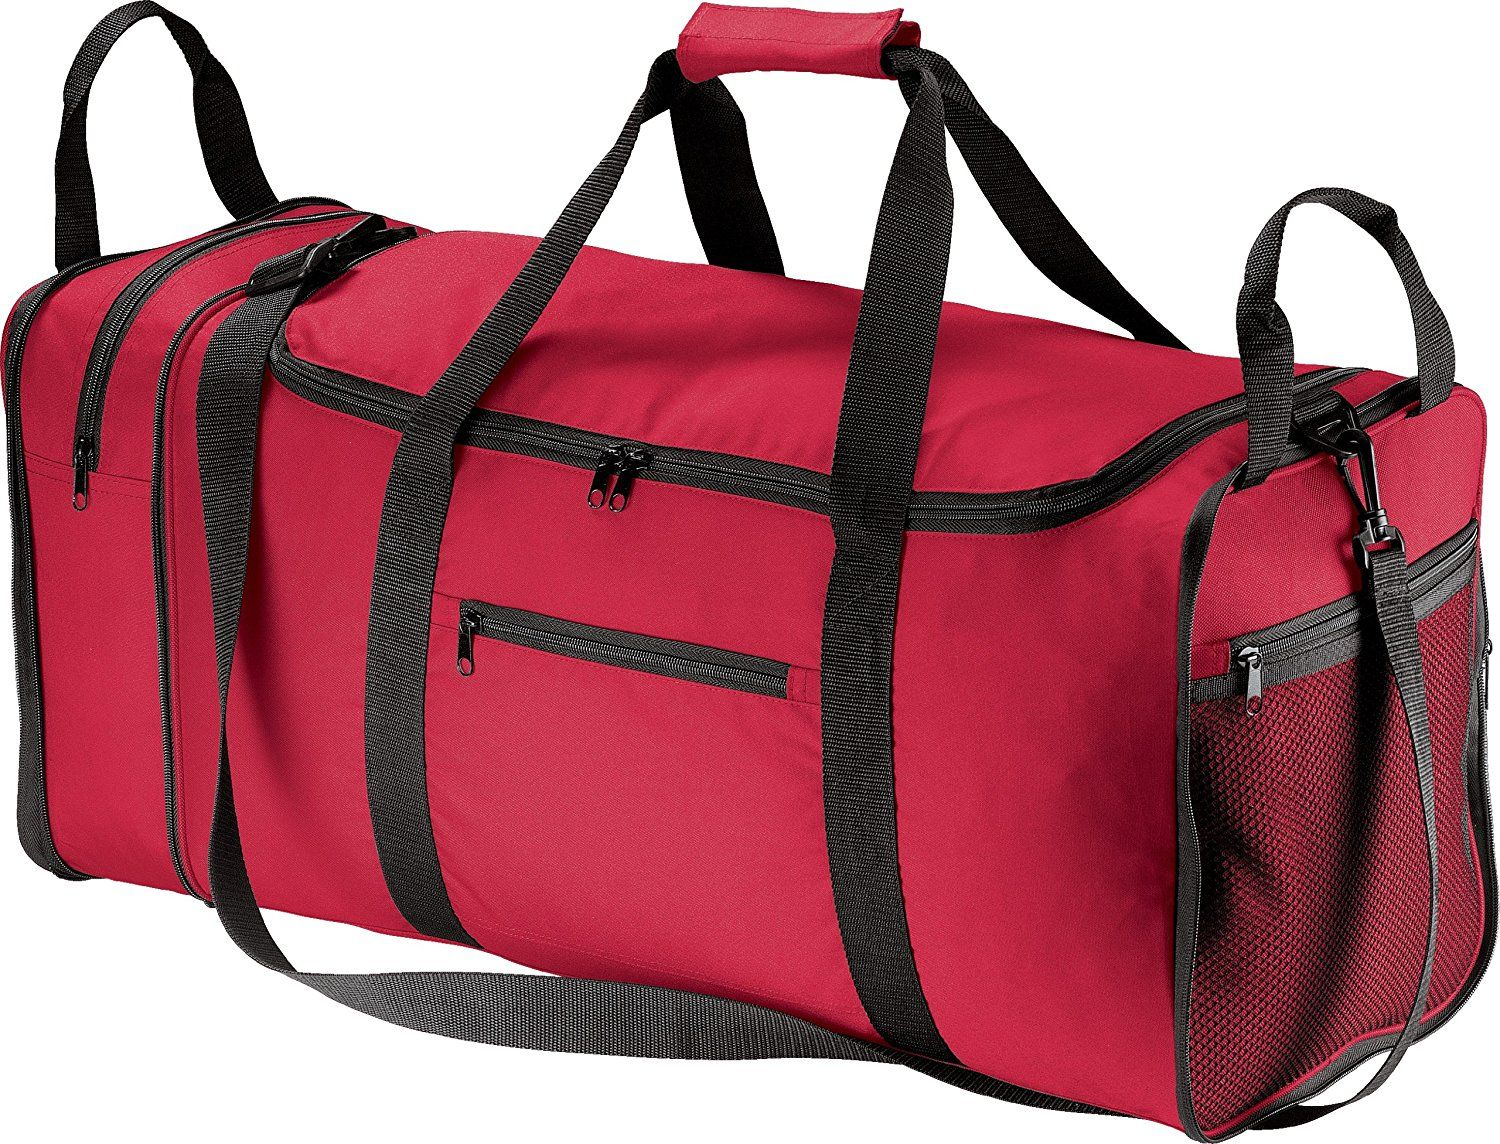 Port Authority luggage-and-bags Packable Travel Duffel OSFA Black